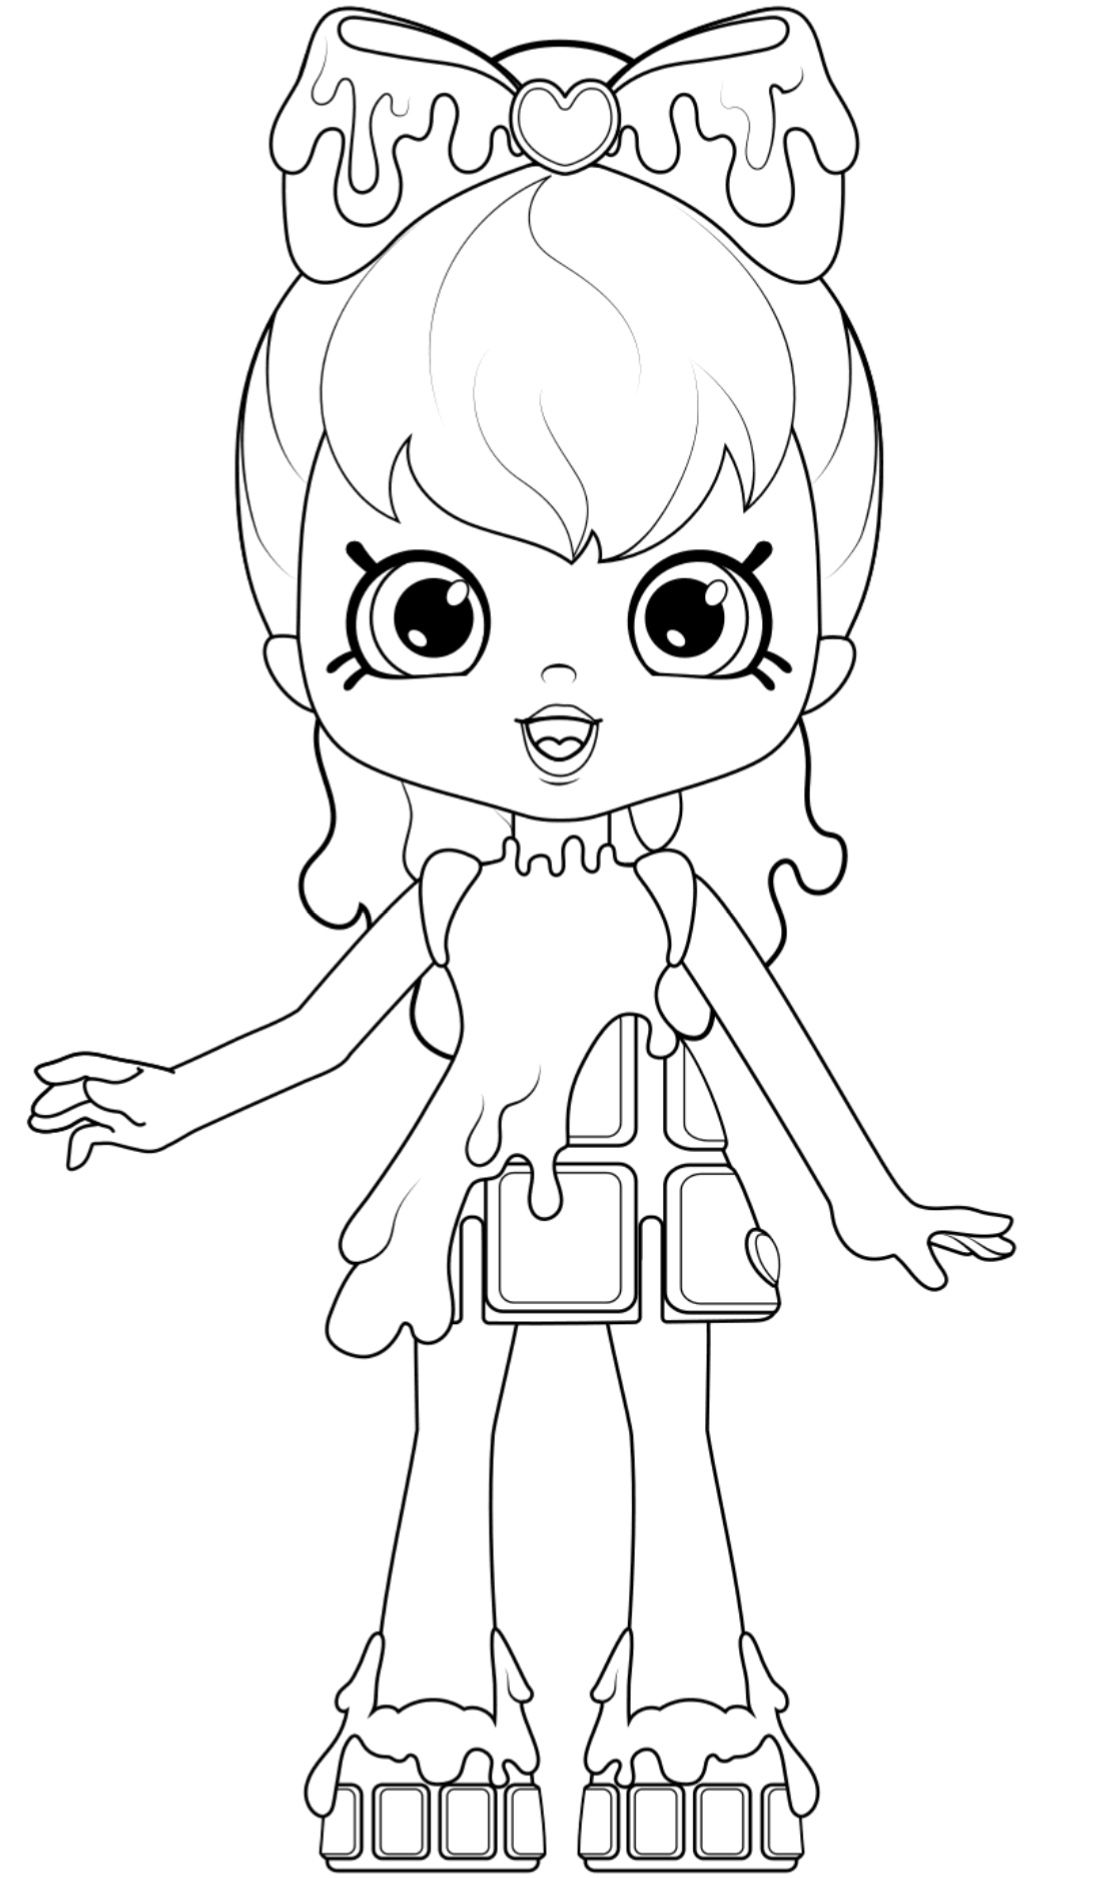 Shopkins Shoppie Coloring Cocolette Happy Places Shopkin Coloring Pages Shopkins Coloring Pages Free Printable Shopkins Colouring Pages